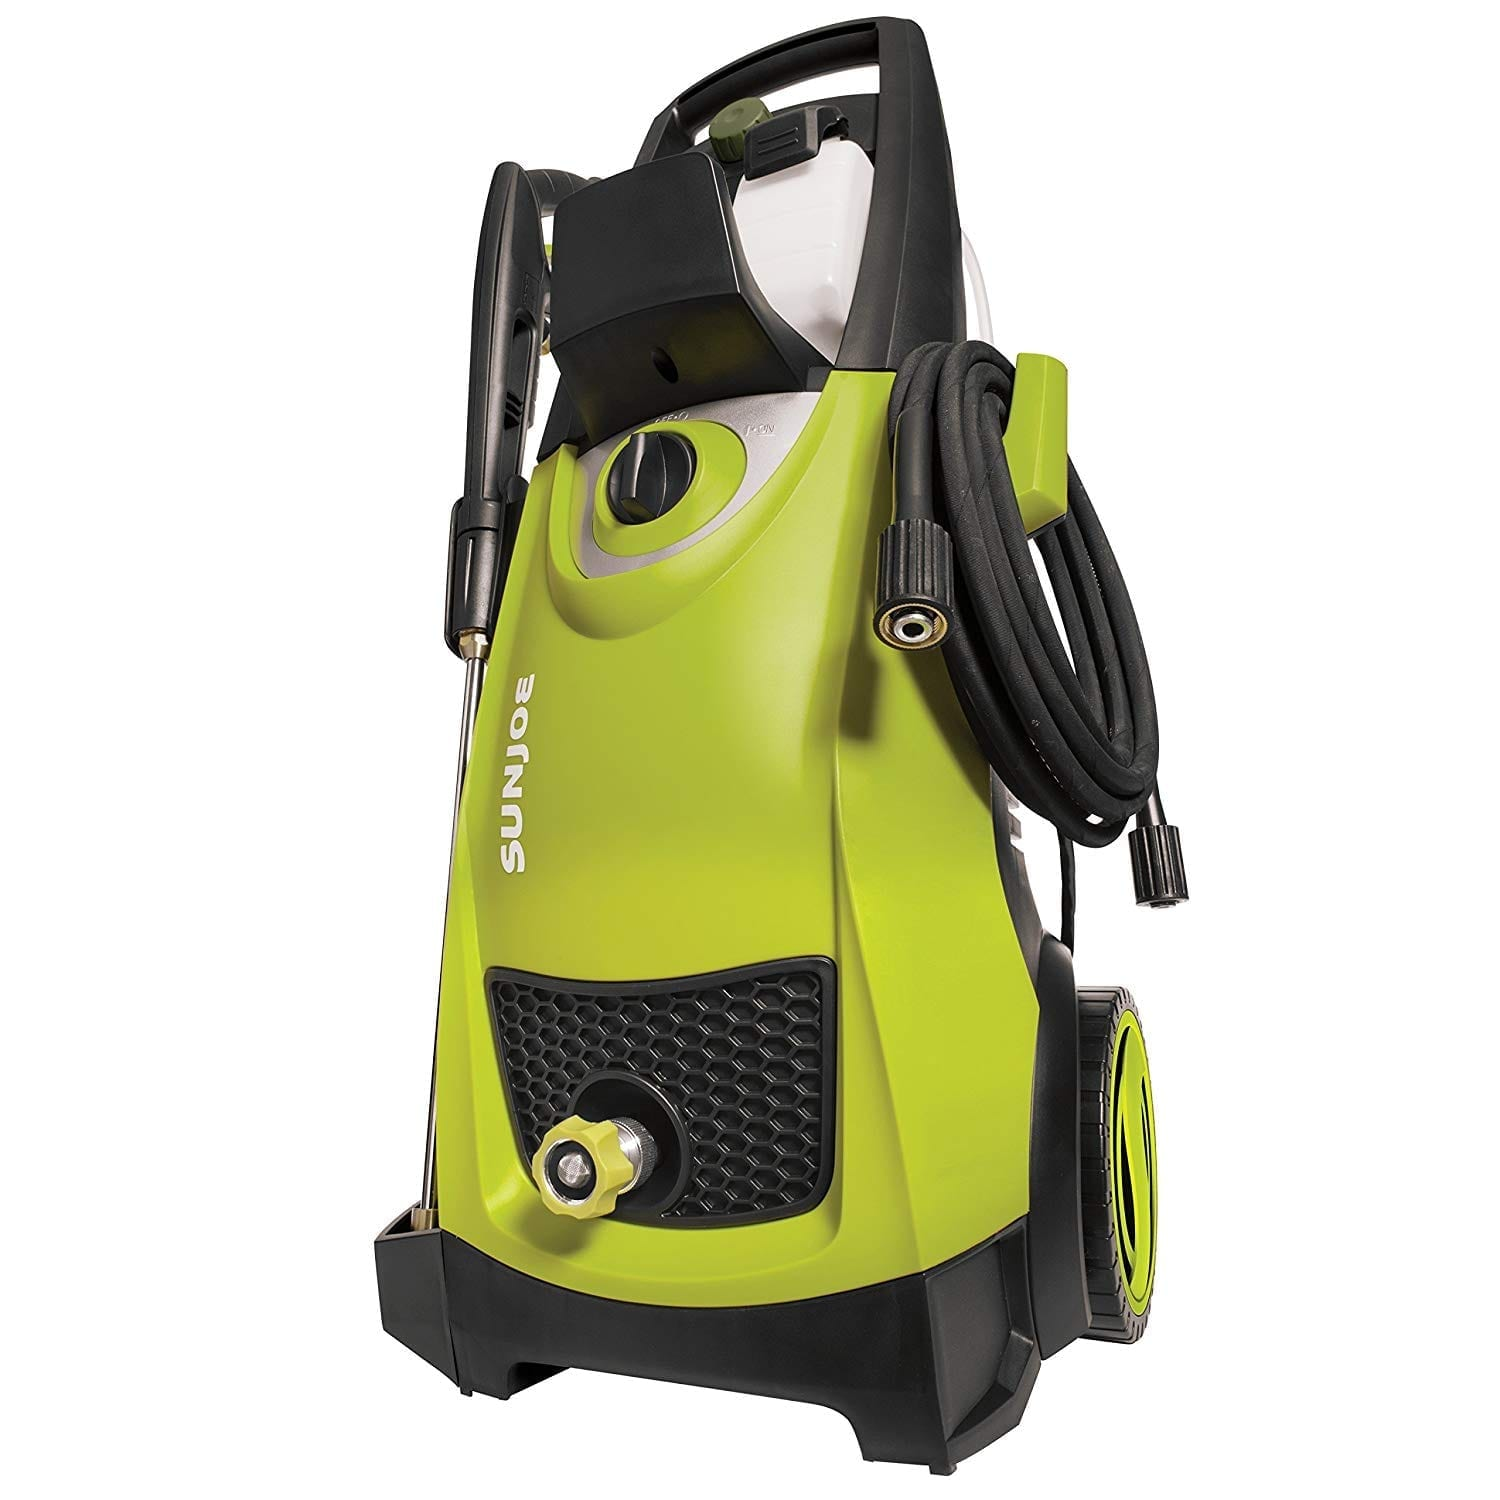 Sun Joe SPX3000 Pressure Joe 2030psi 1.76 GPM Electric Pressure Washer